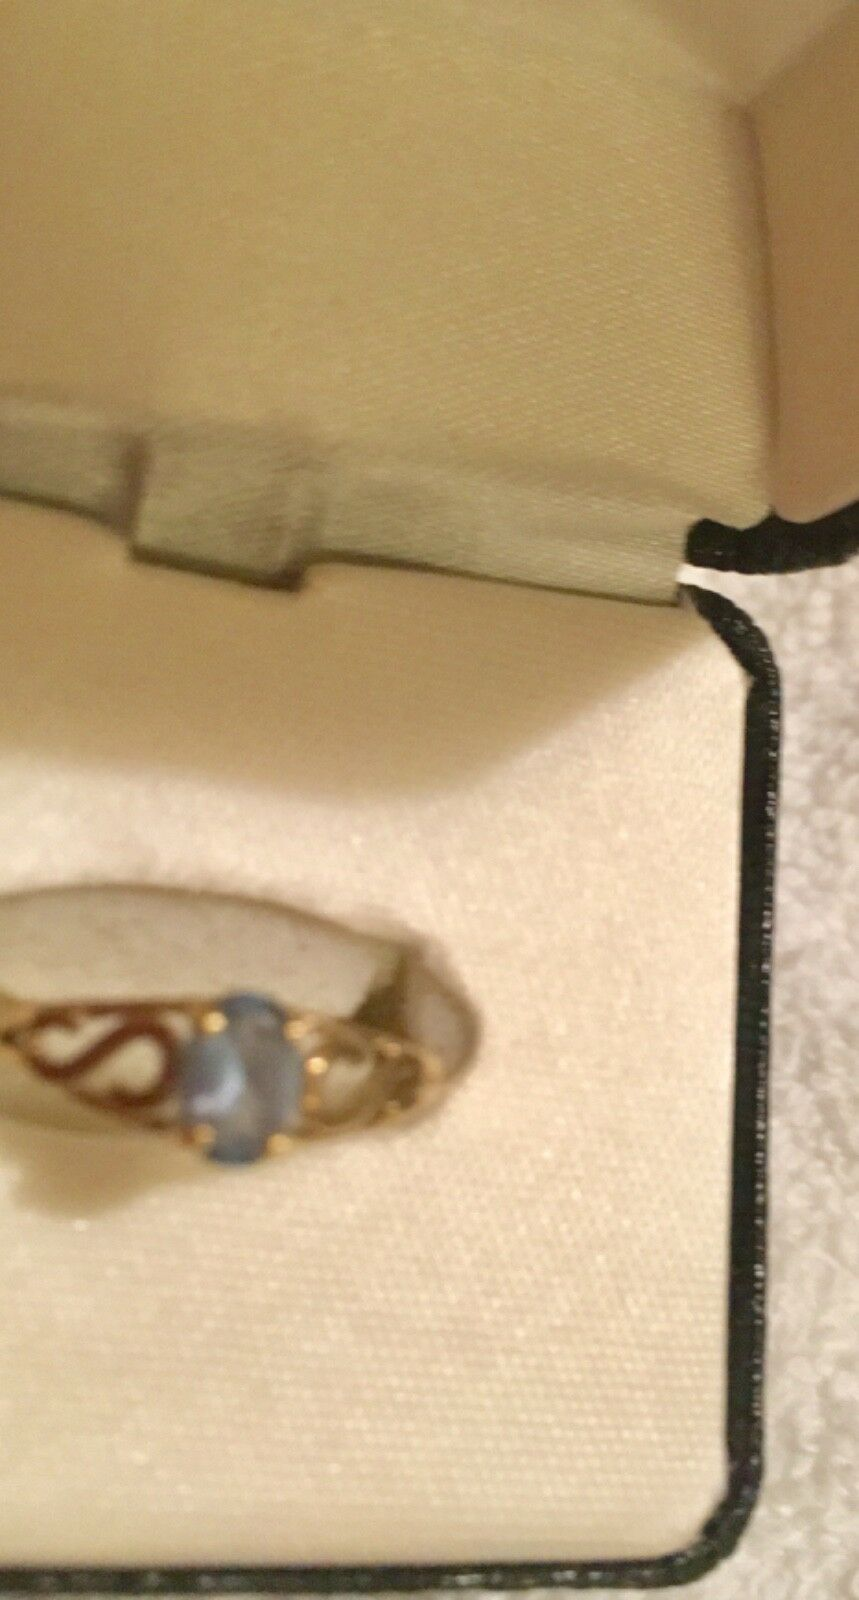 Ladies 10K gold Ring with Light blueee Stone...size 6